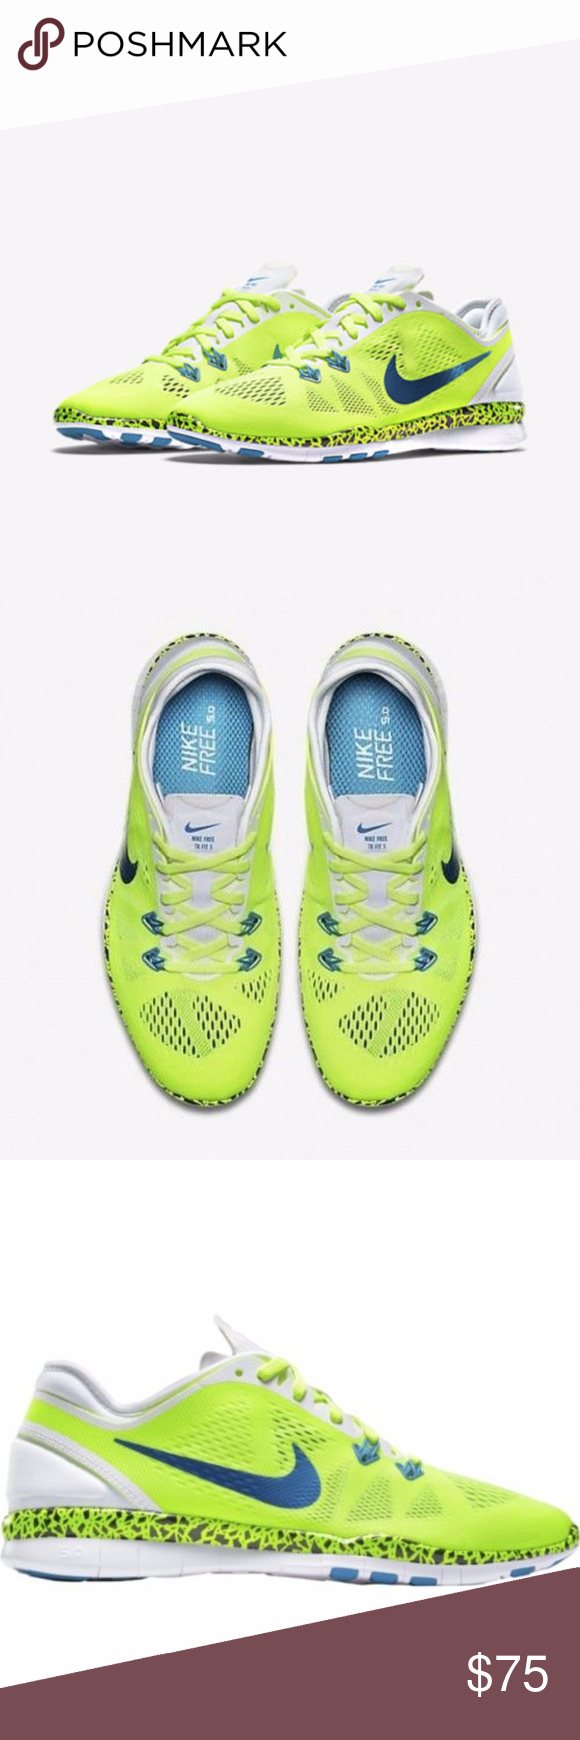 42e0293d725a Nike Free 5.0 TR Fit 5 WC Training Running Shoes This listing is for one  pair